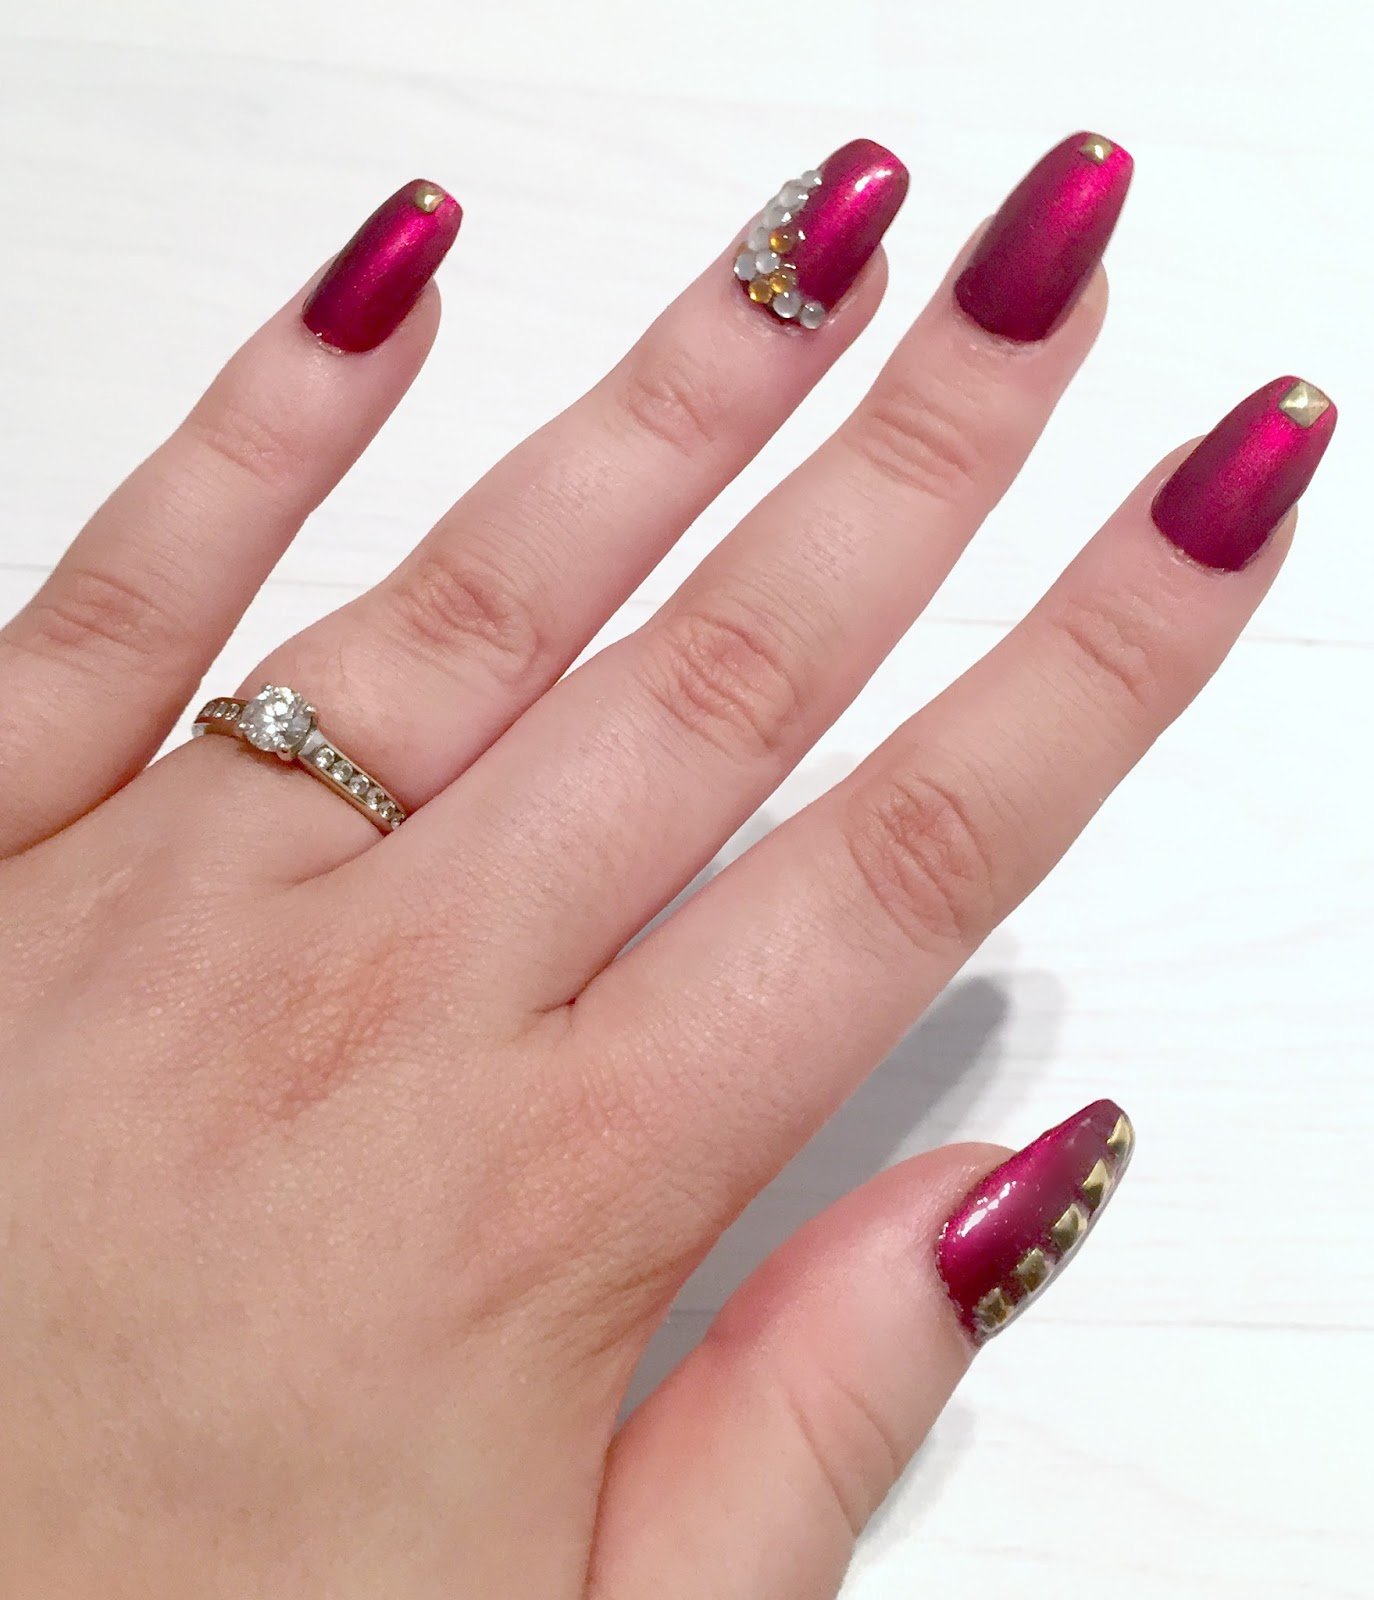 Party Coffin nails at Home - Laura Trends